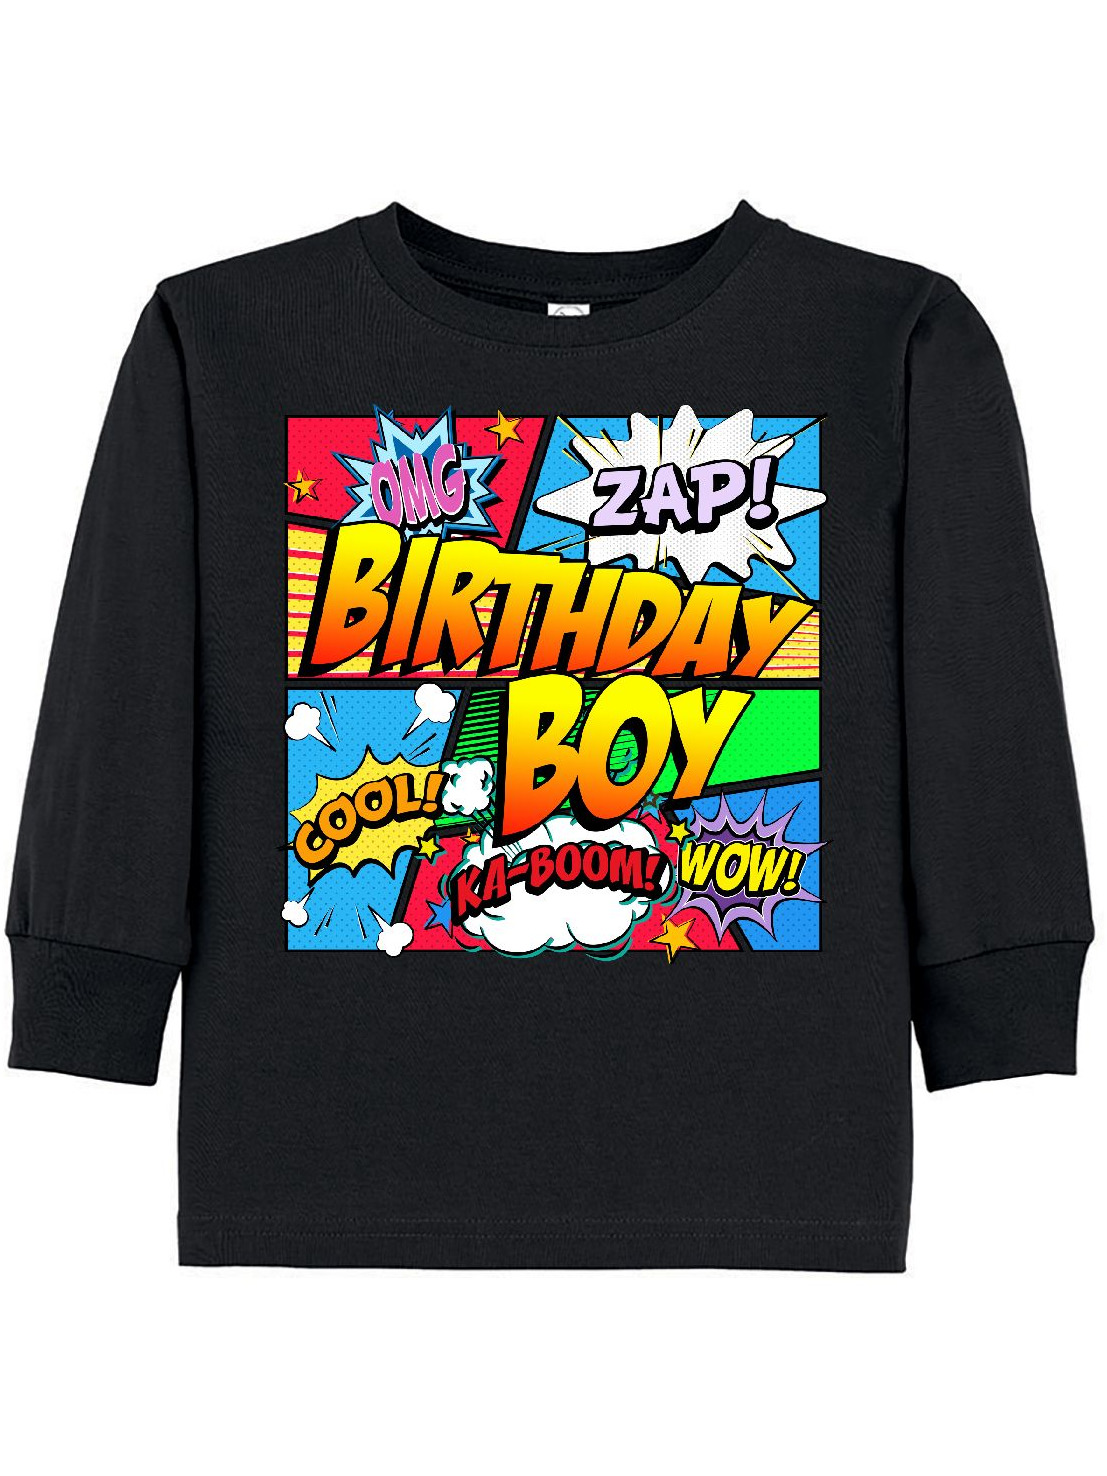 Birthday Boy Comic Book Toddler Long Sleeve T Shirt